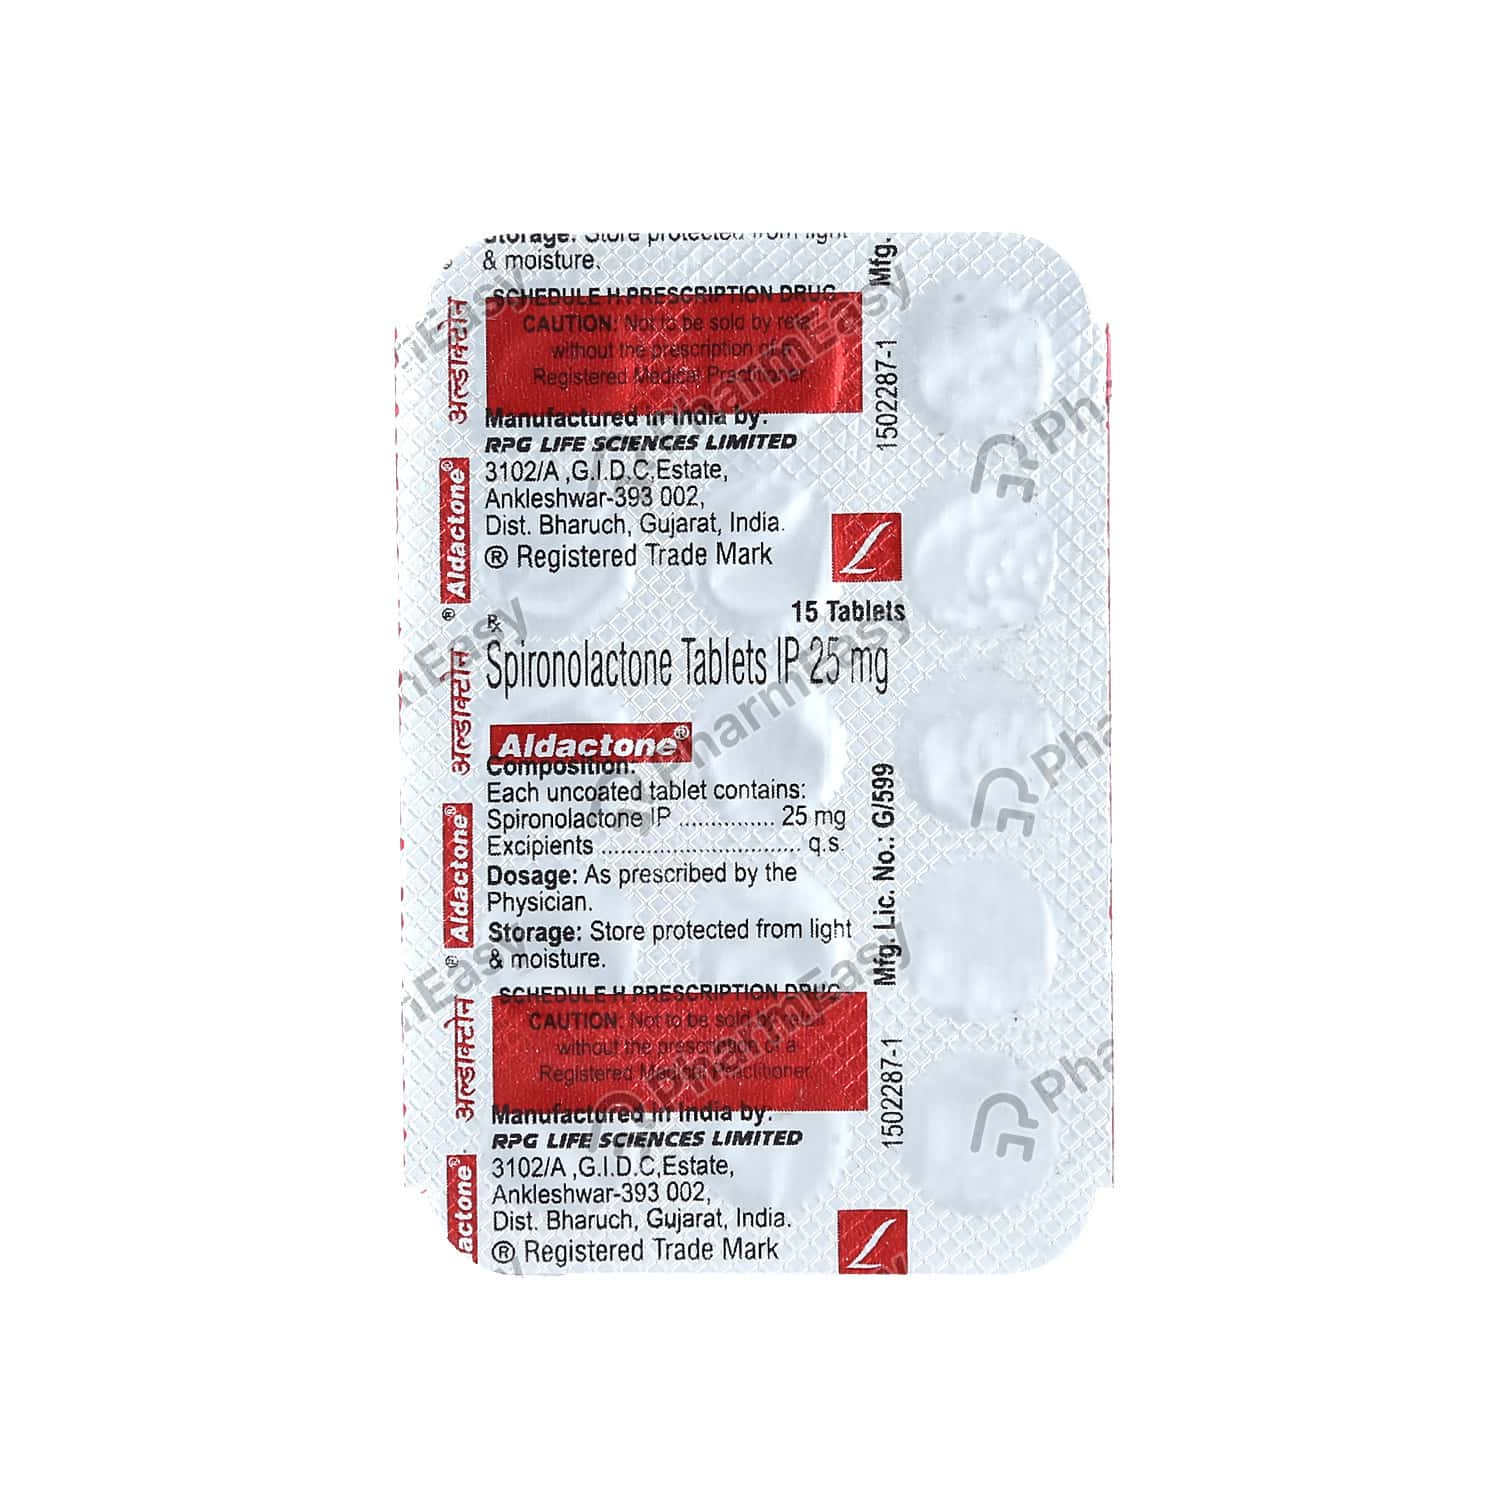 Aldactone 25mg Strip Of 15 Tablets